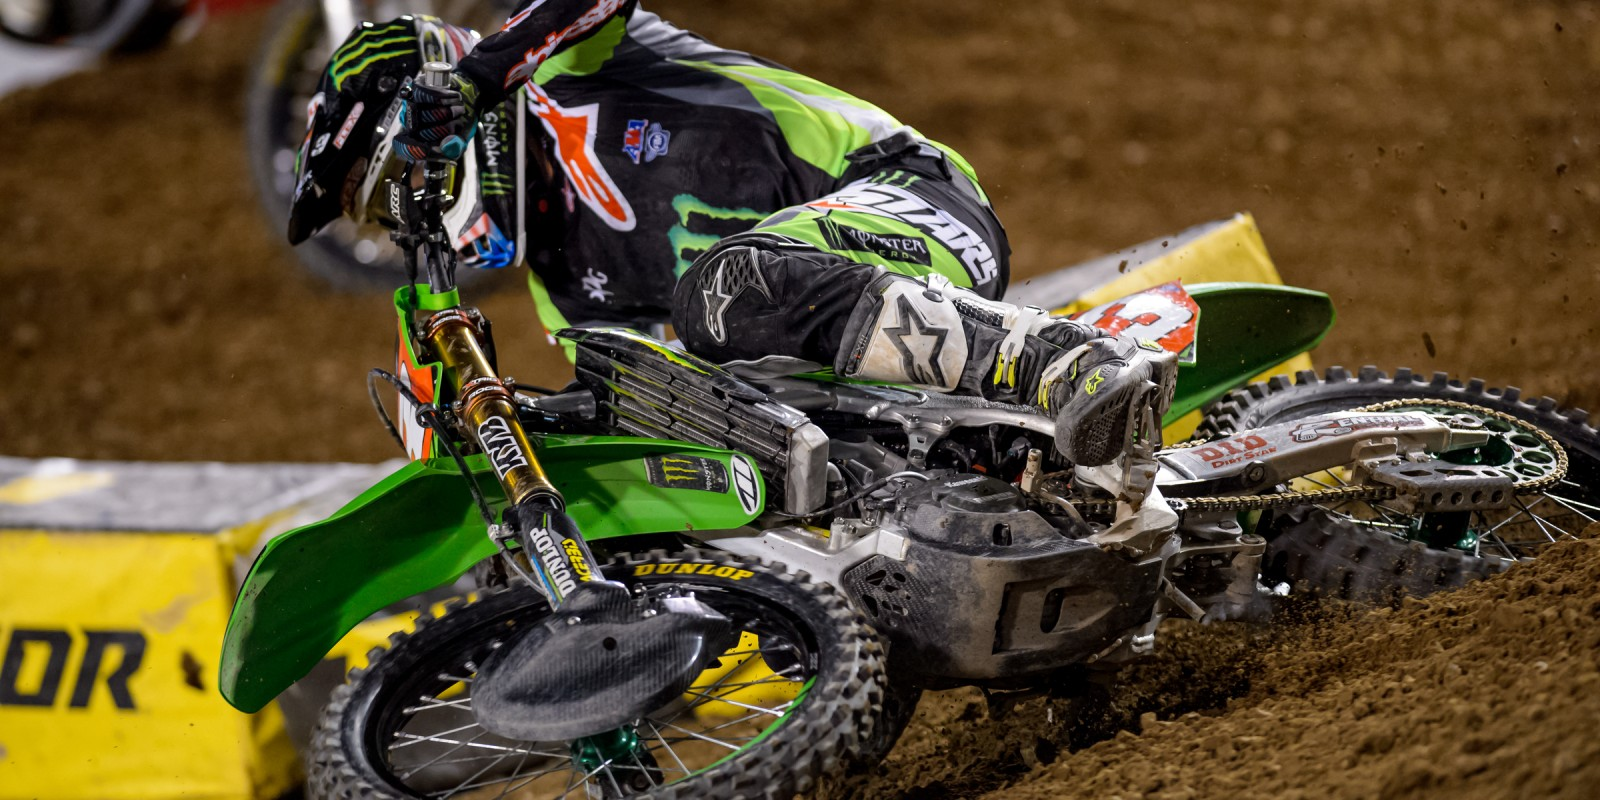 Action shots of MX Championship at Salt Lake City